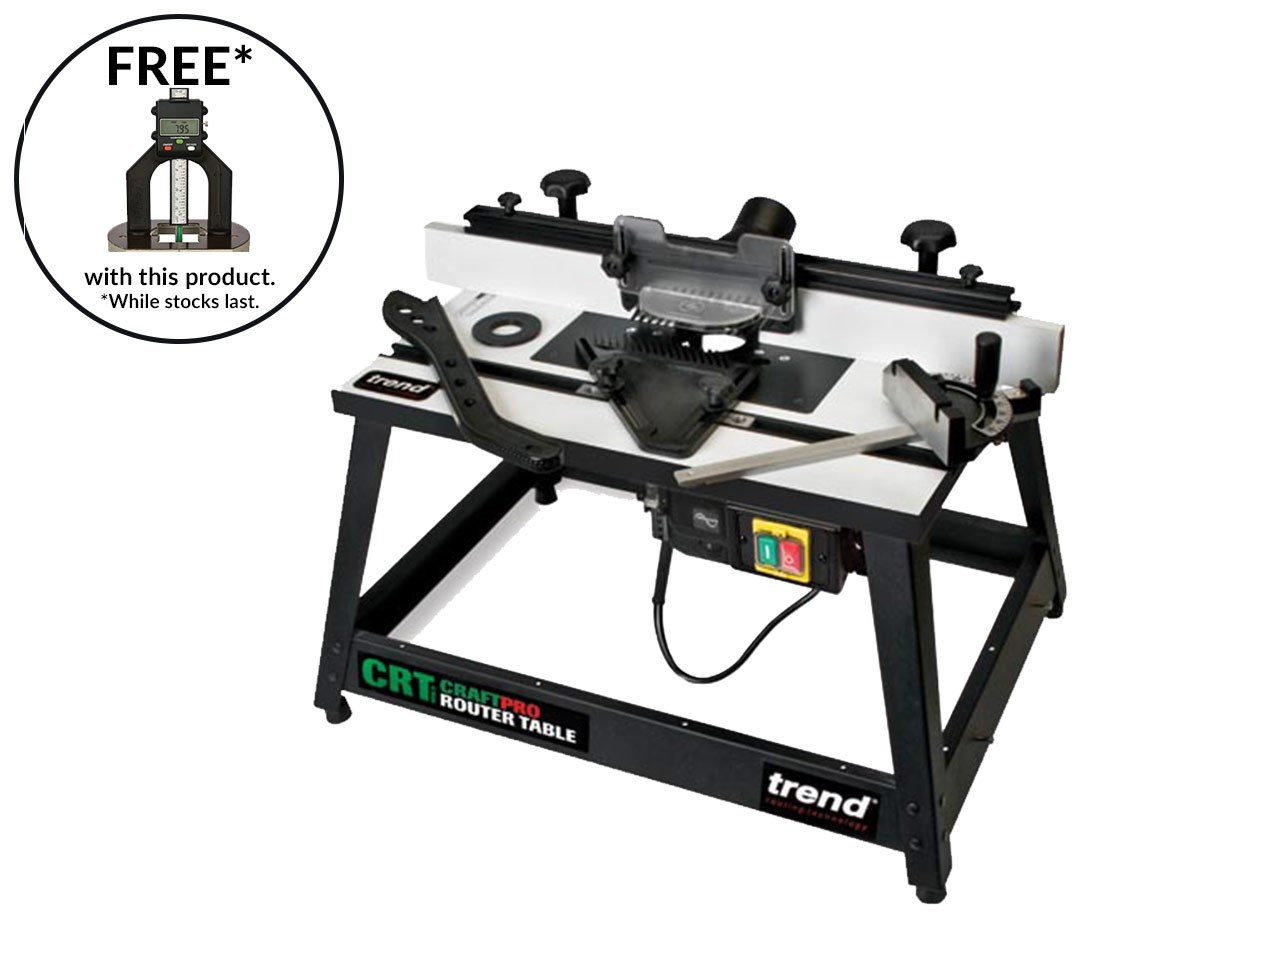 Trend crtmk3l craftpro router table mk3 115v greentooth Gallery